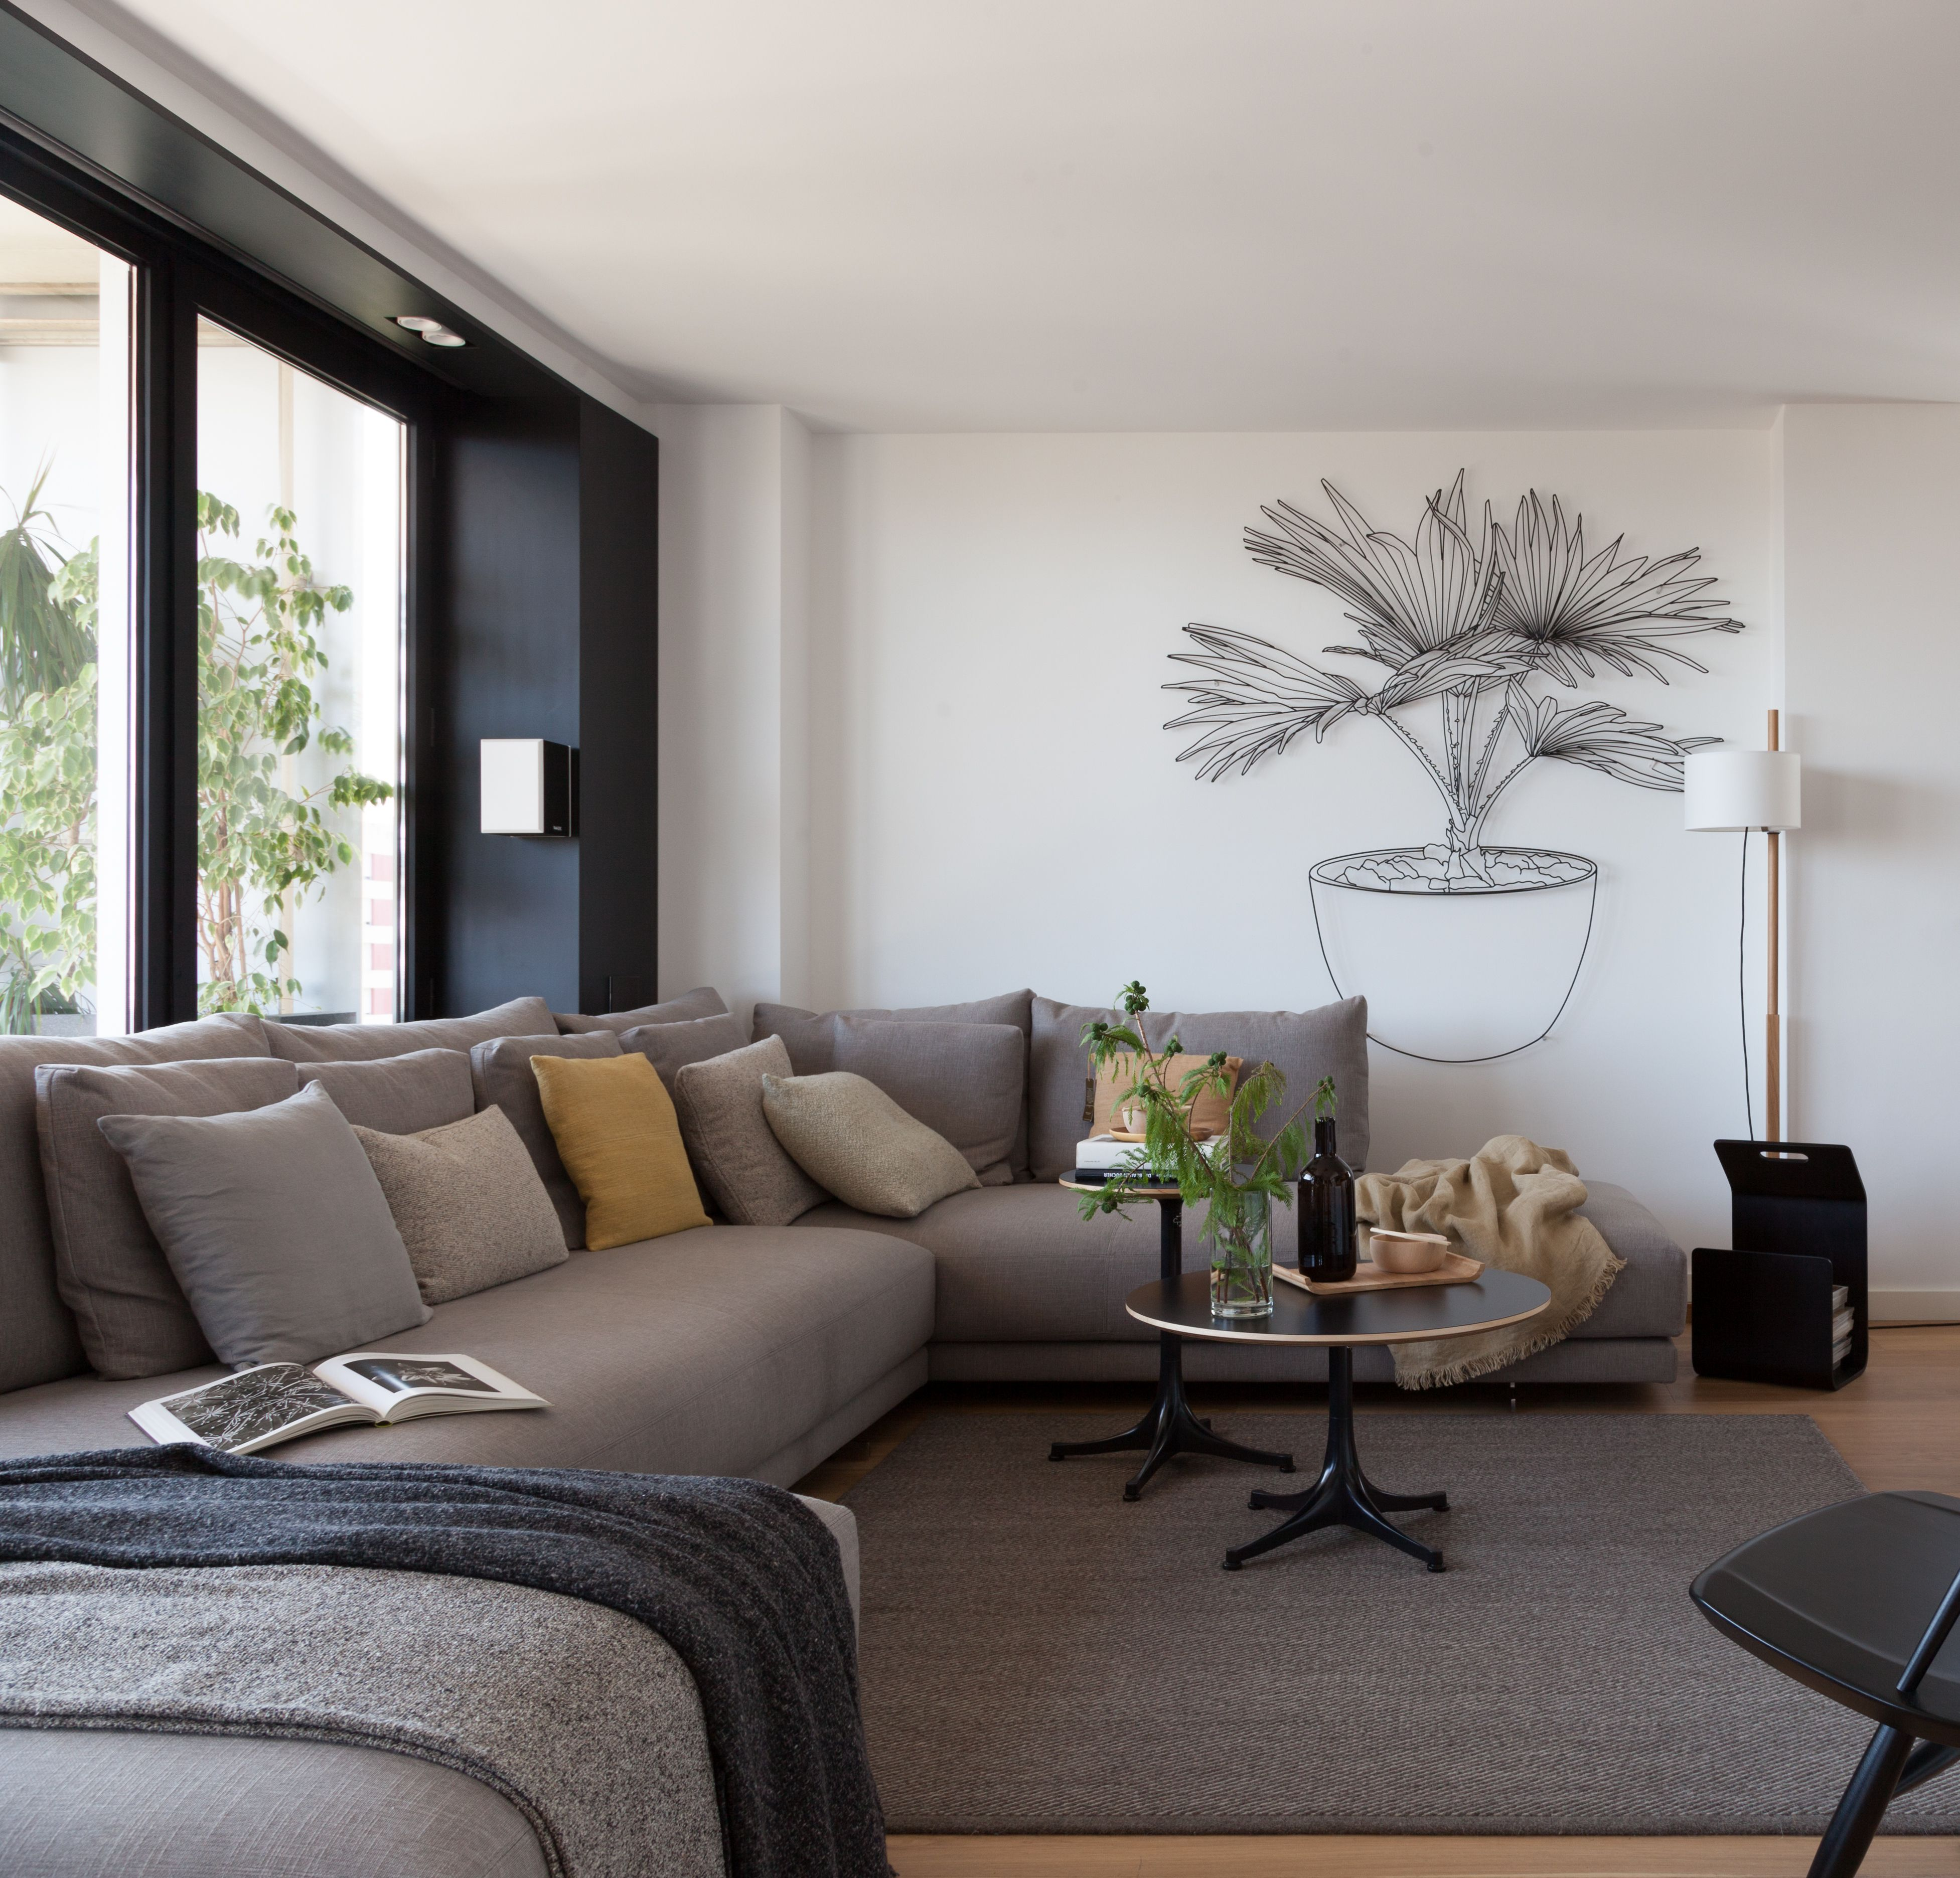 A light bright apartment renovation in barcelona by aileen kwun